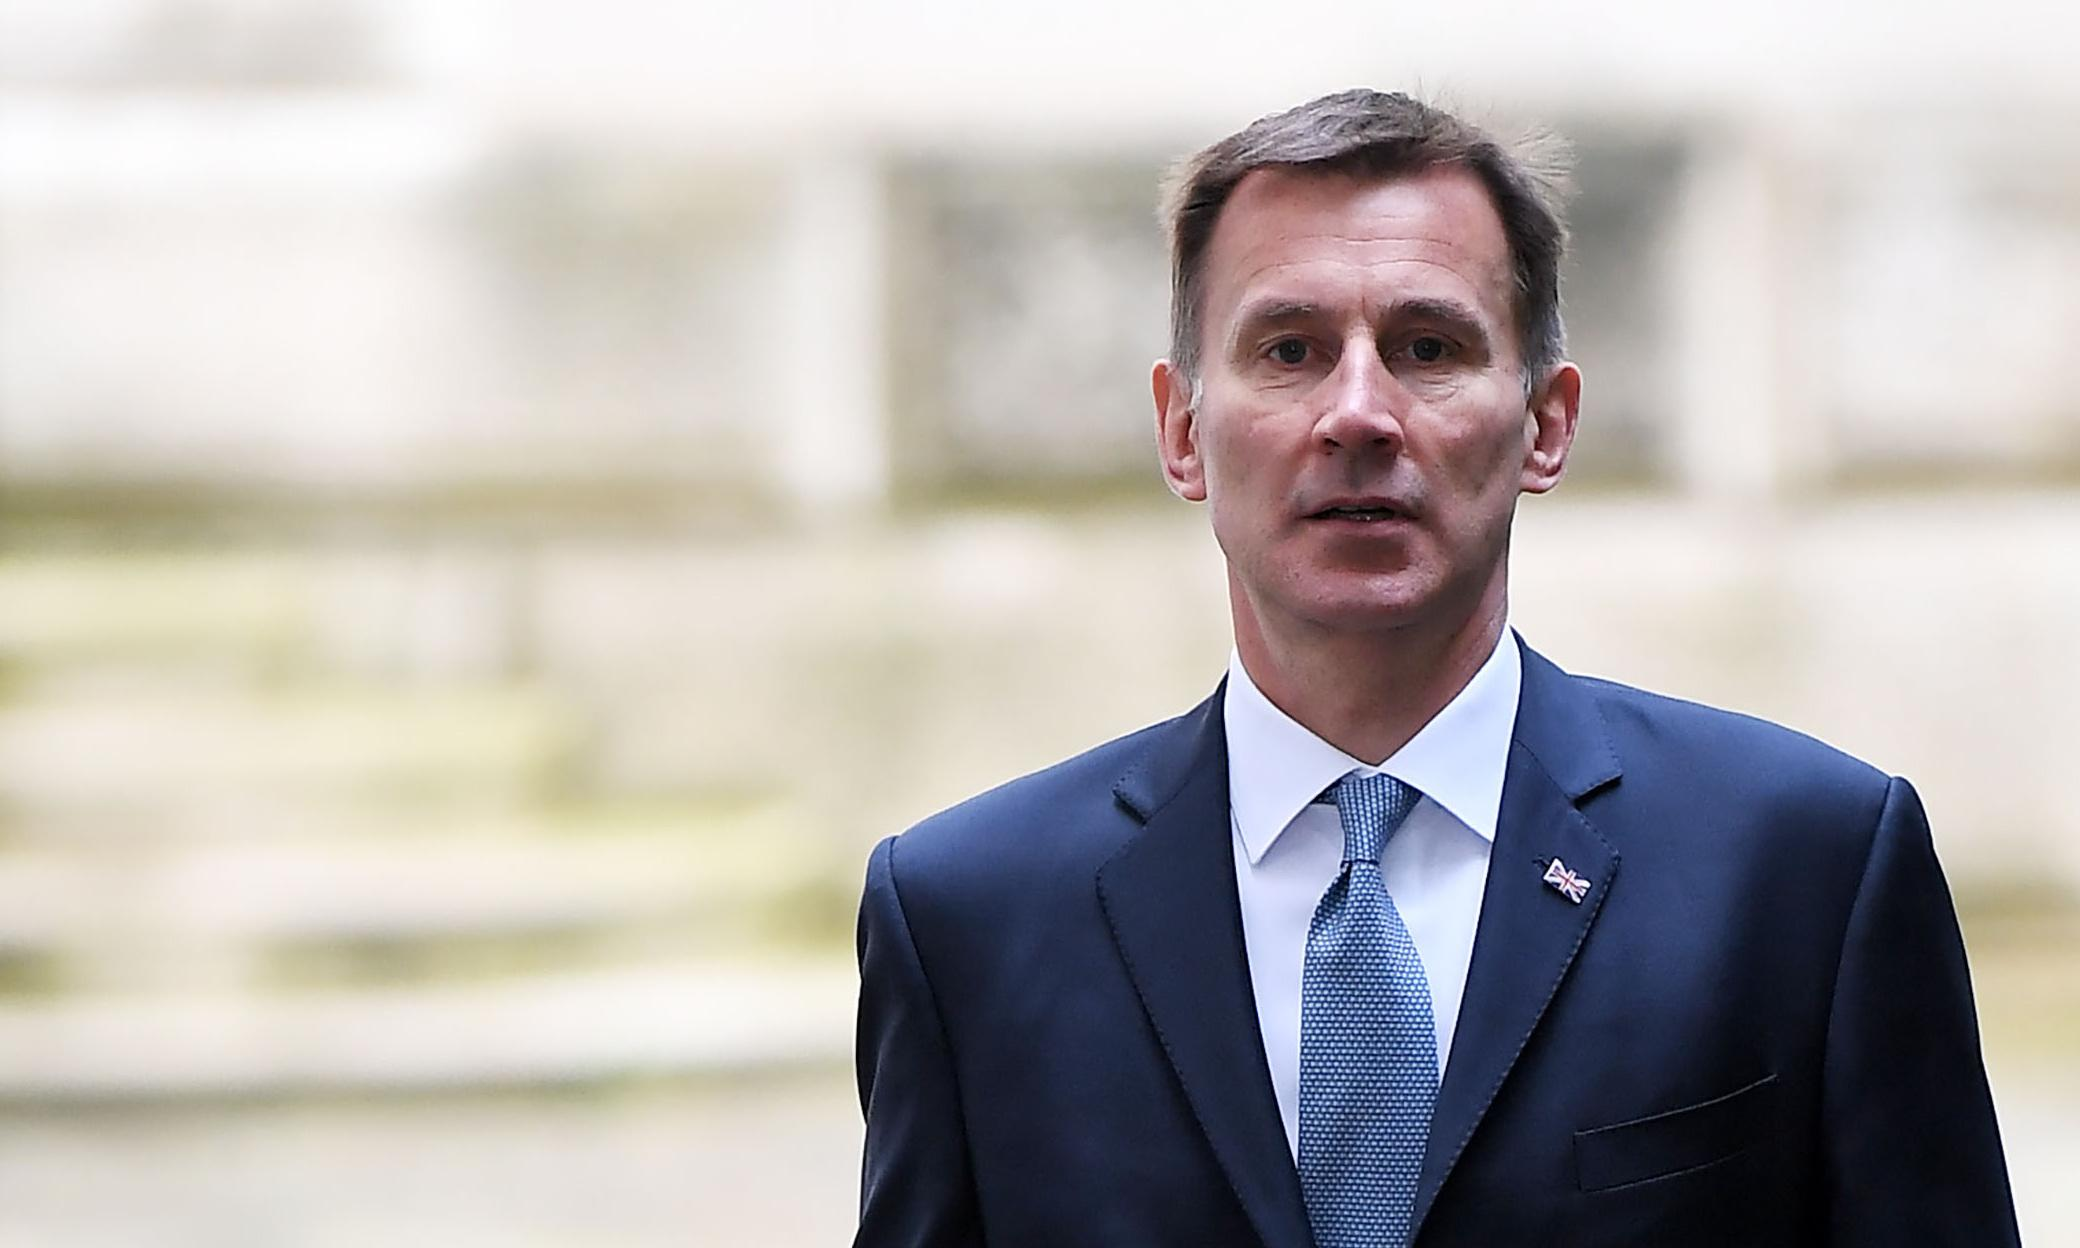 Does Jeremy Hunt actually want to kill old people?